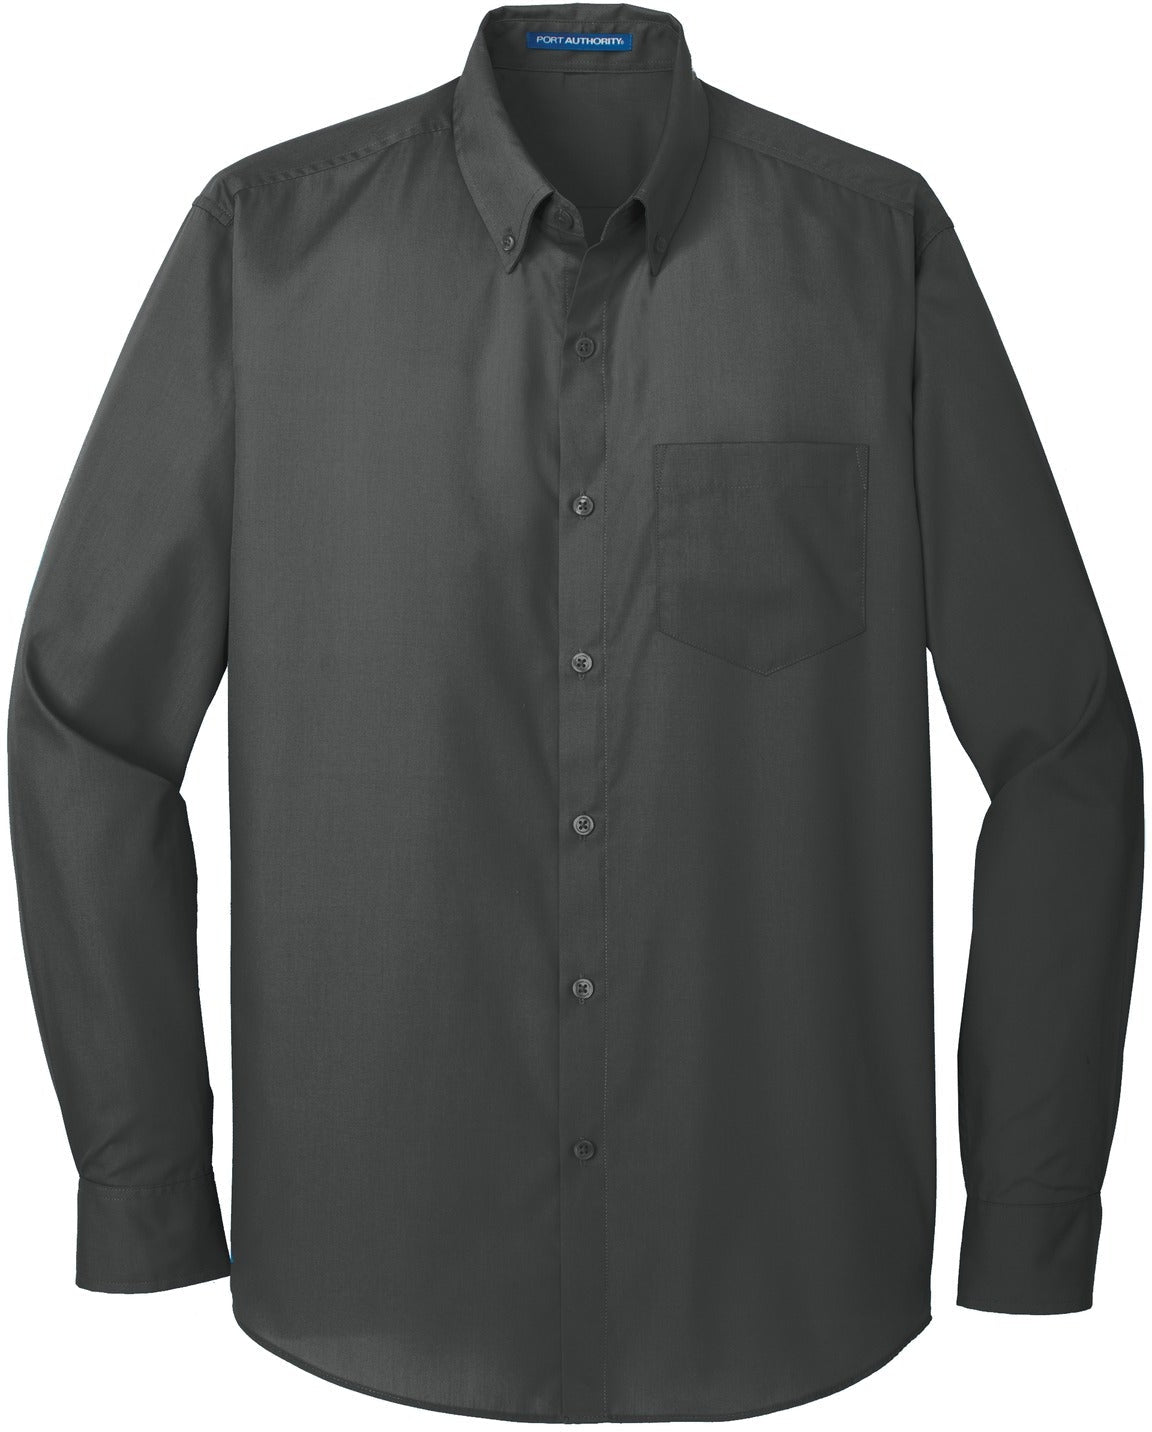 Port Authority-Carefree Poplin Shirt-S-Graphite-Thread Logic